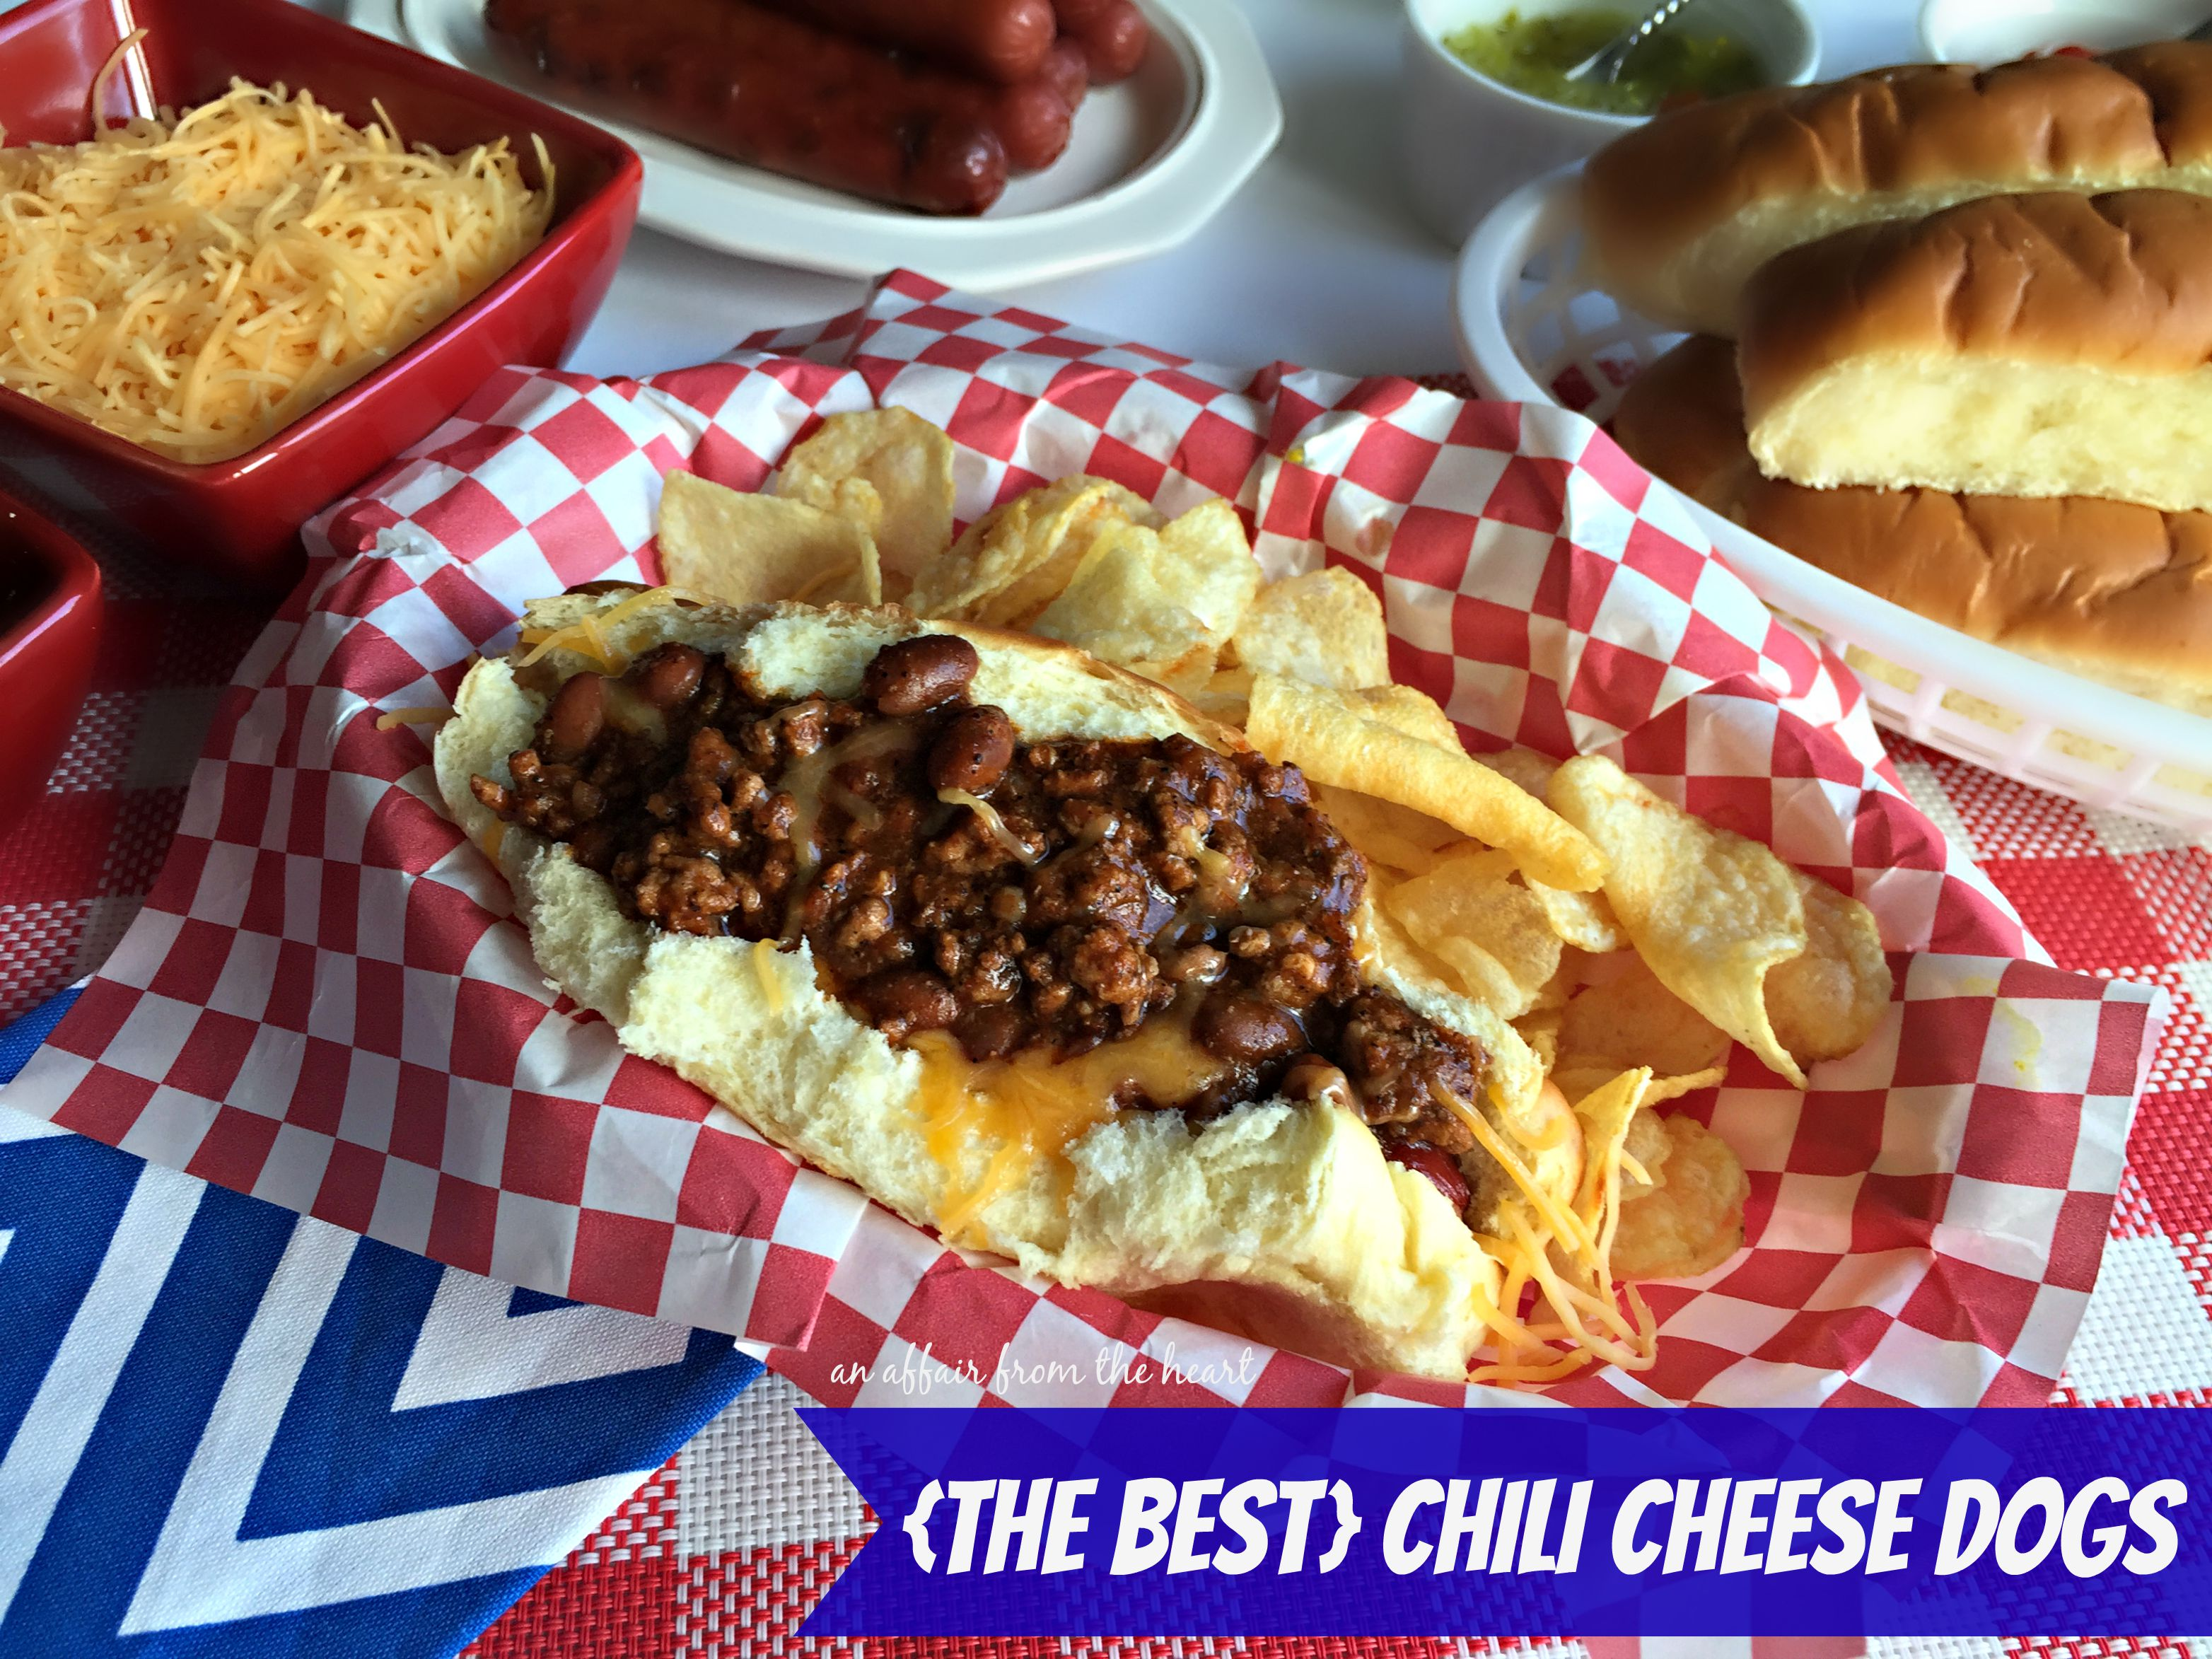 The Best Chili Cheese Dogs